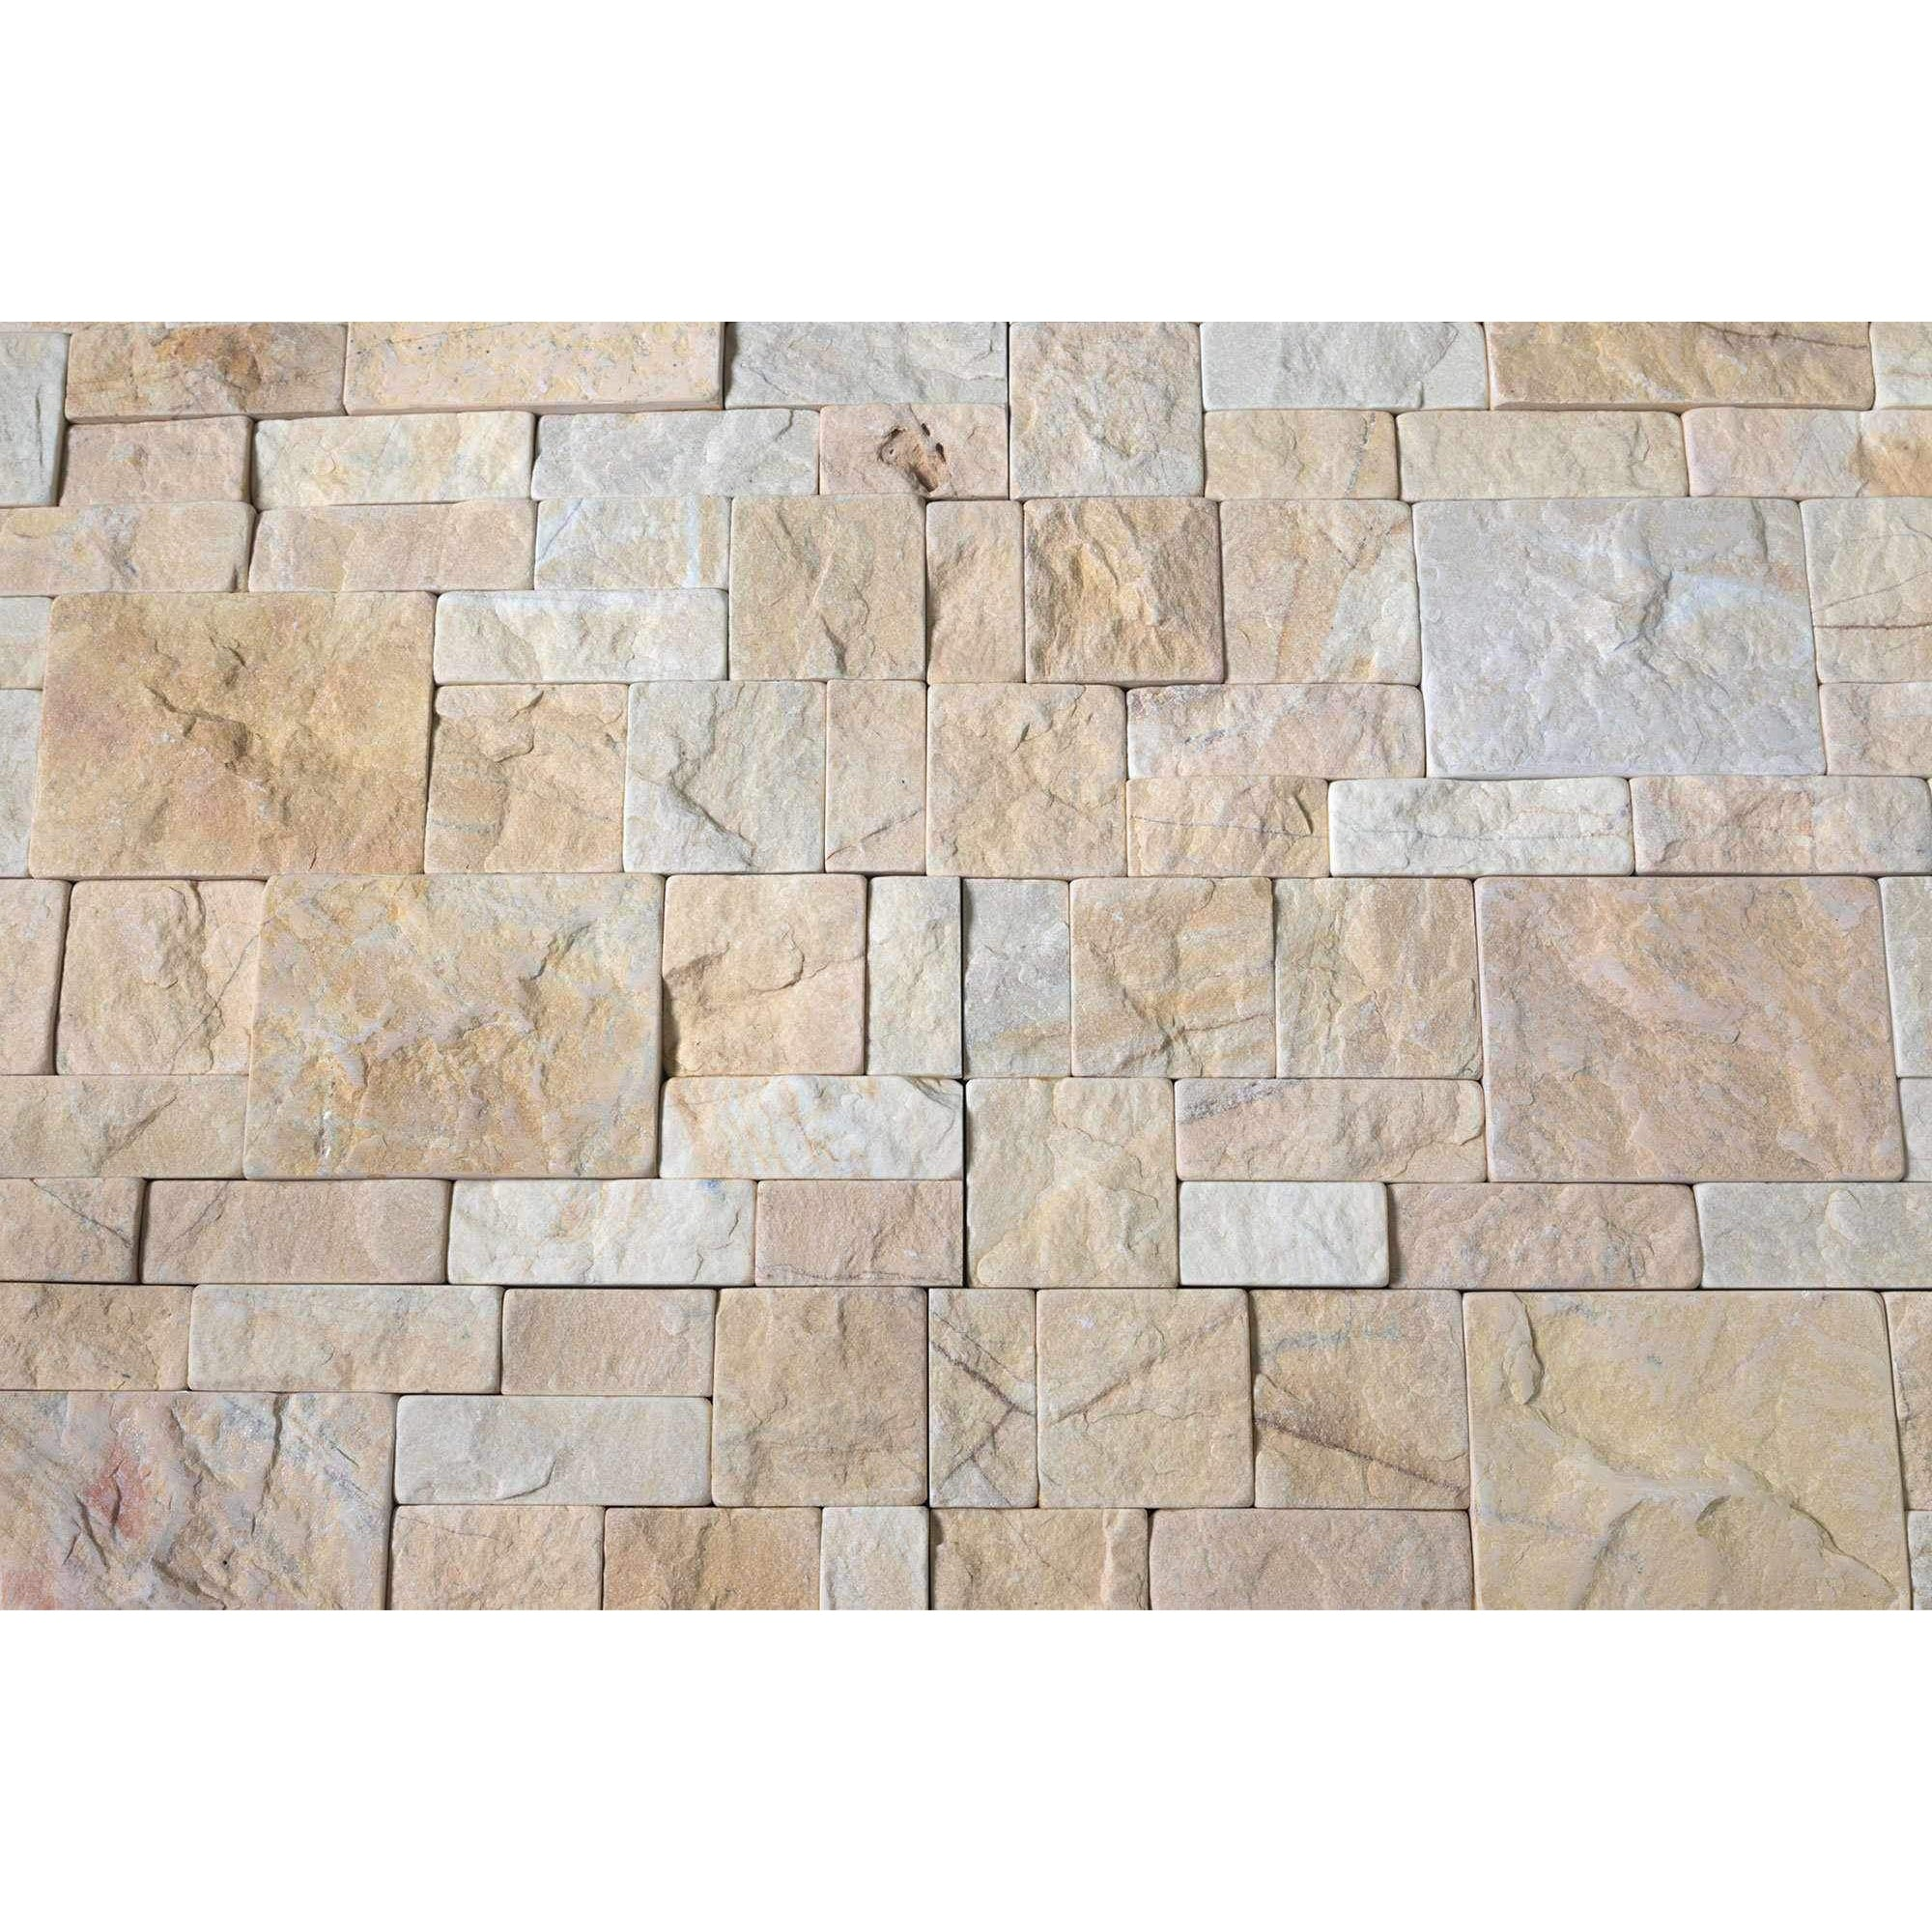 Natural Stacked Stone Feature Wall Cladding Panels - Tumbled Mustard Montage-Wall Cladding-Stone and Rock